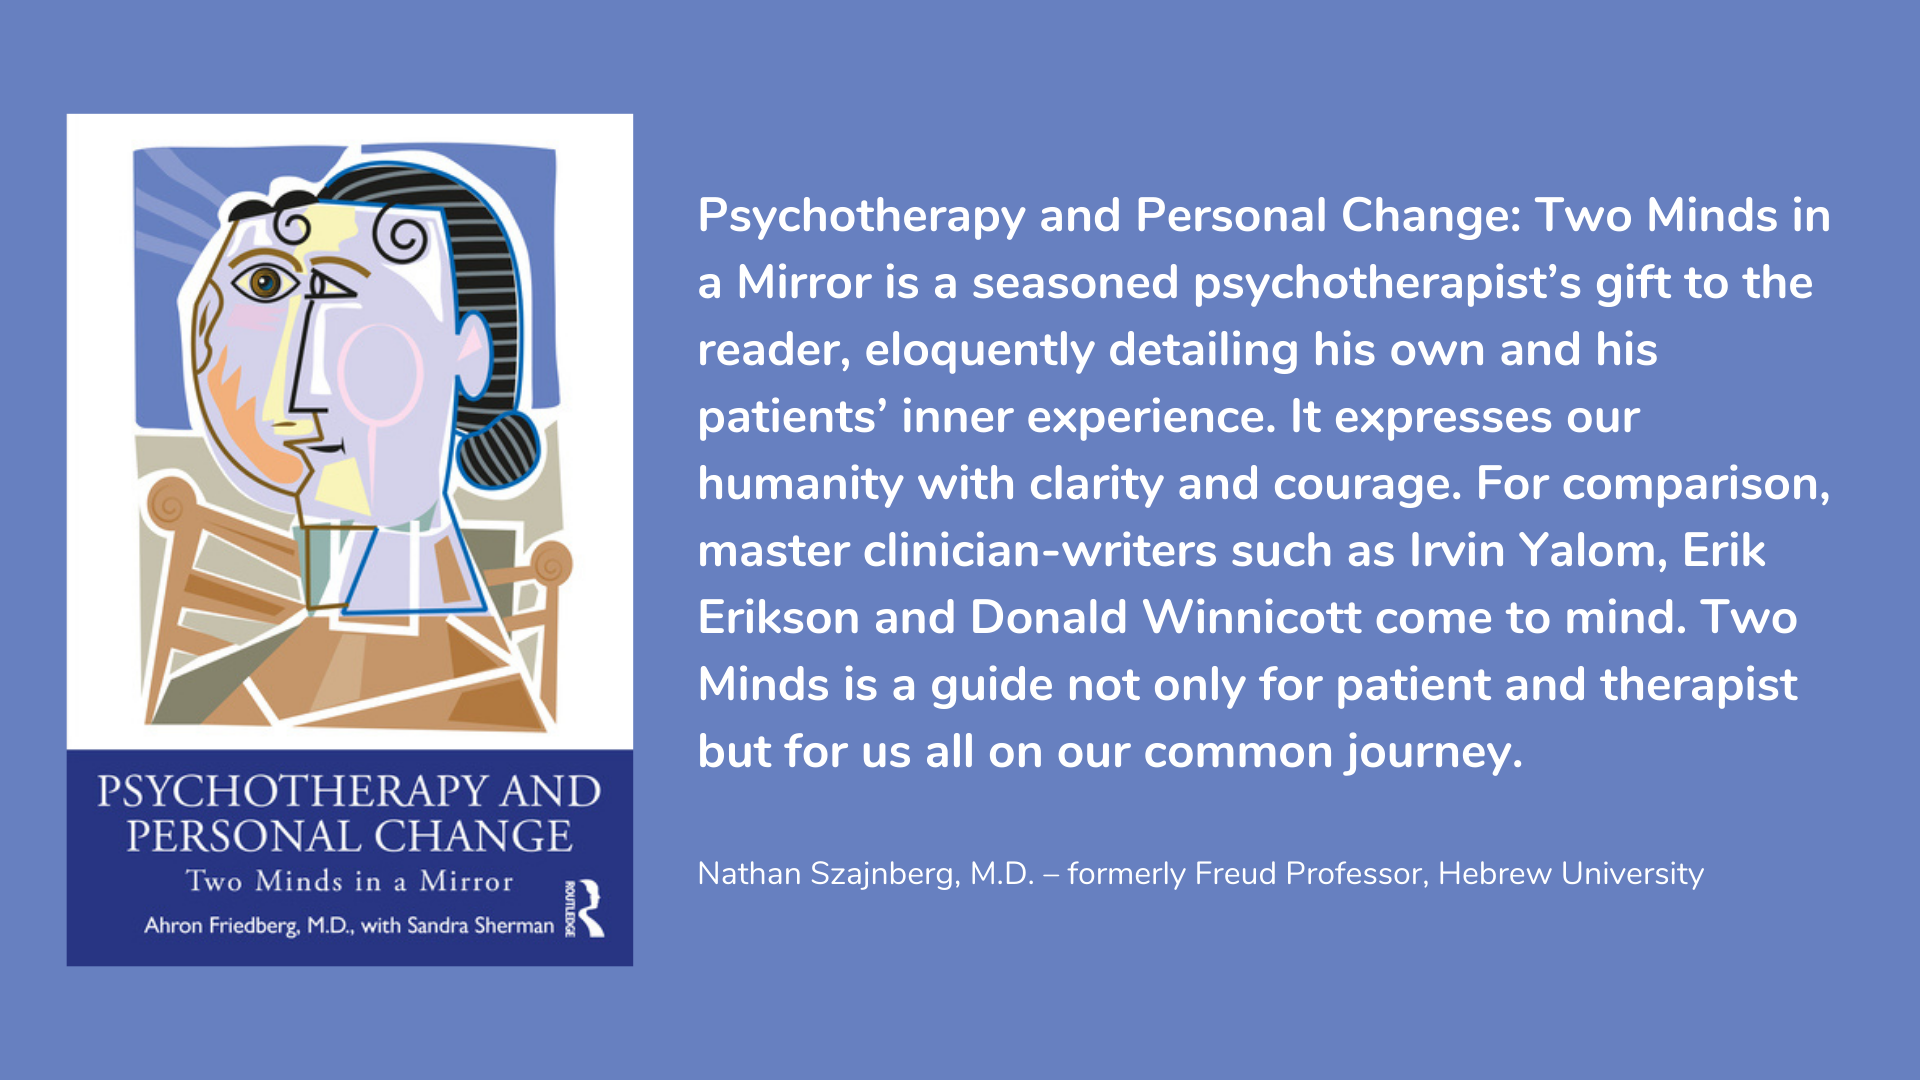 Psychotherapy and Personal Change: Two Minds in a Mirror